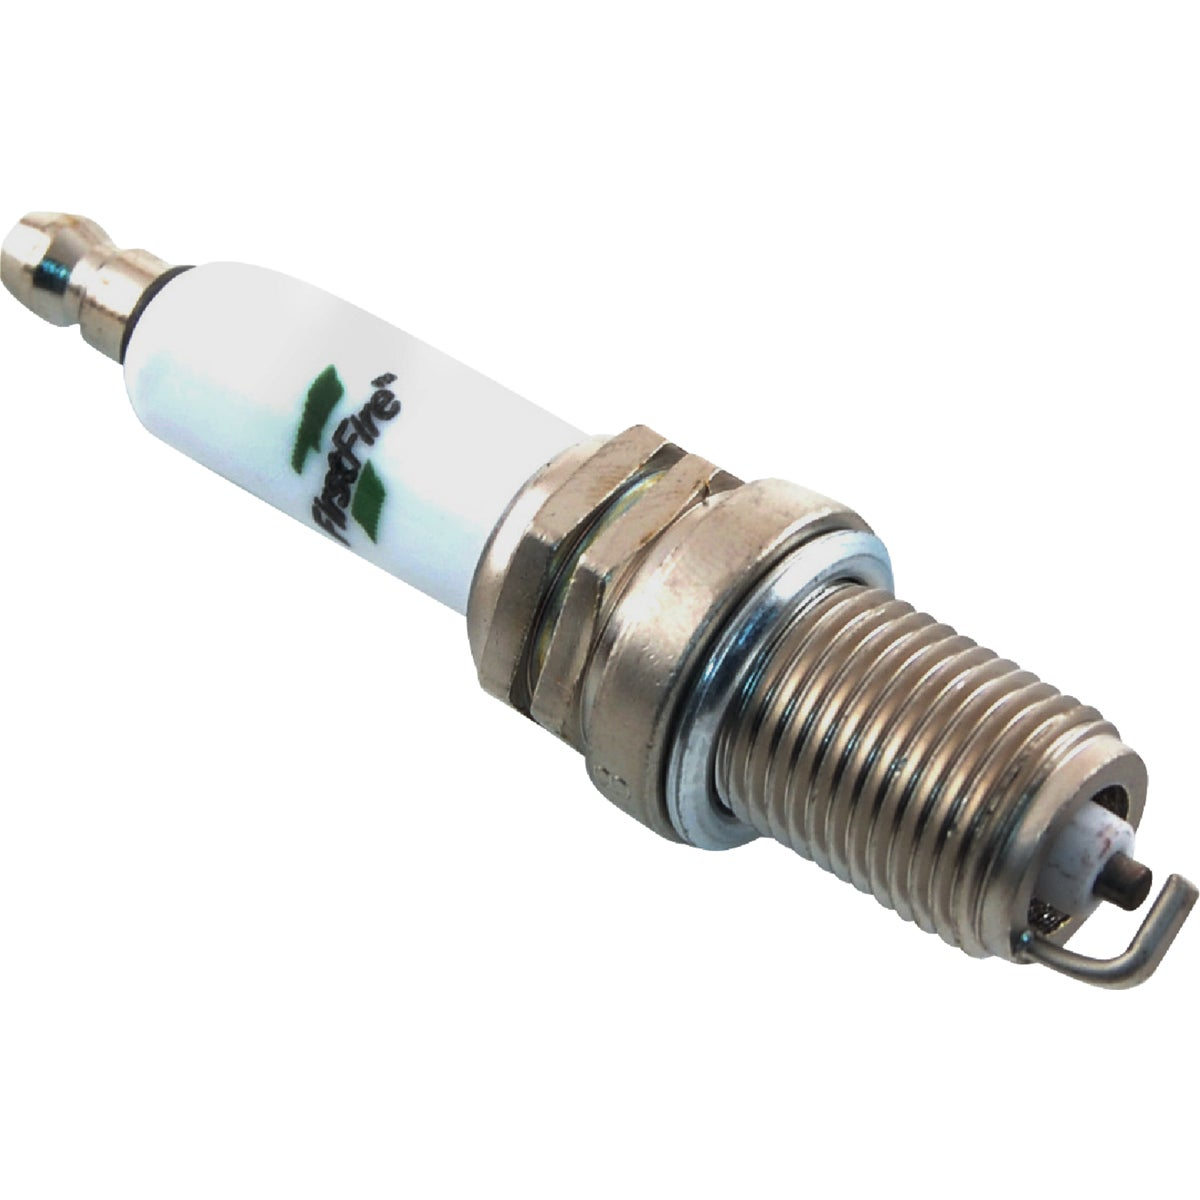 14MM SPARK PLUG - FF-20 by Arnold Corp